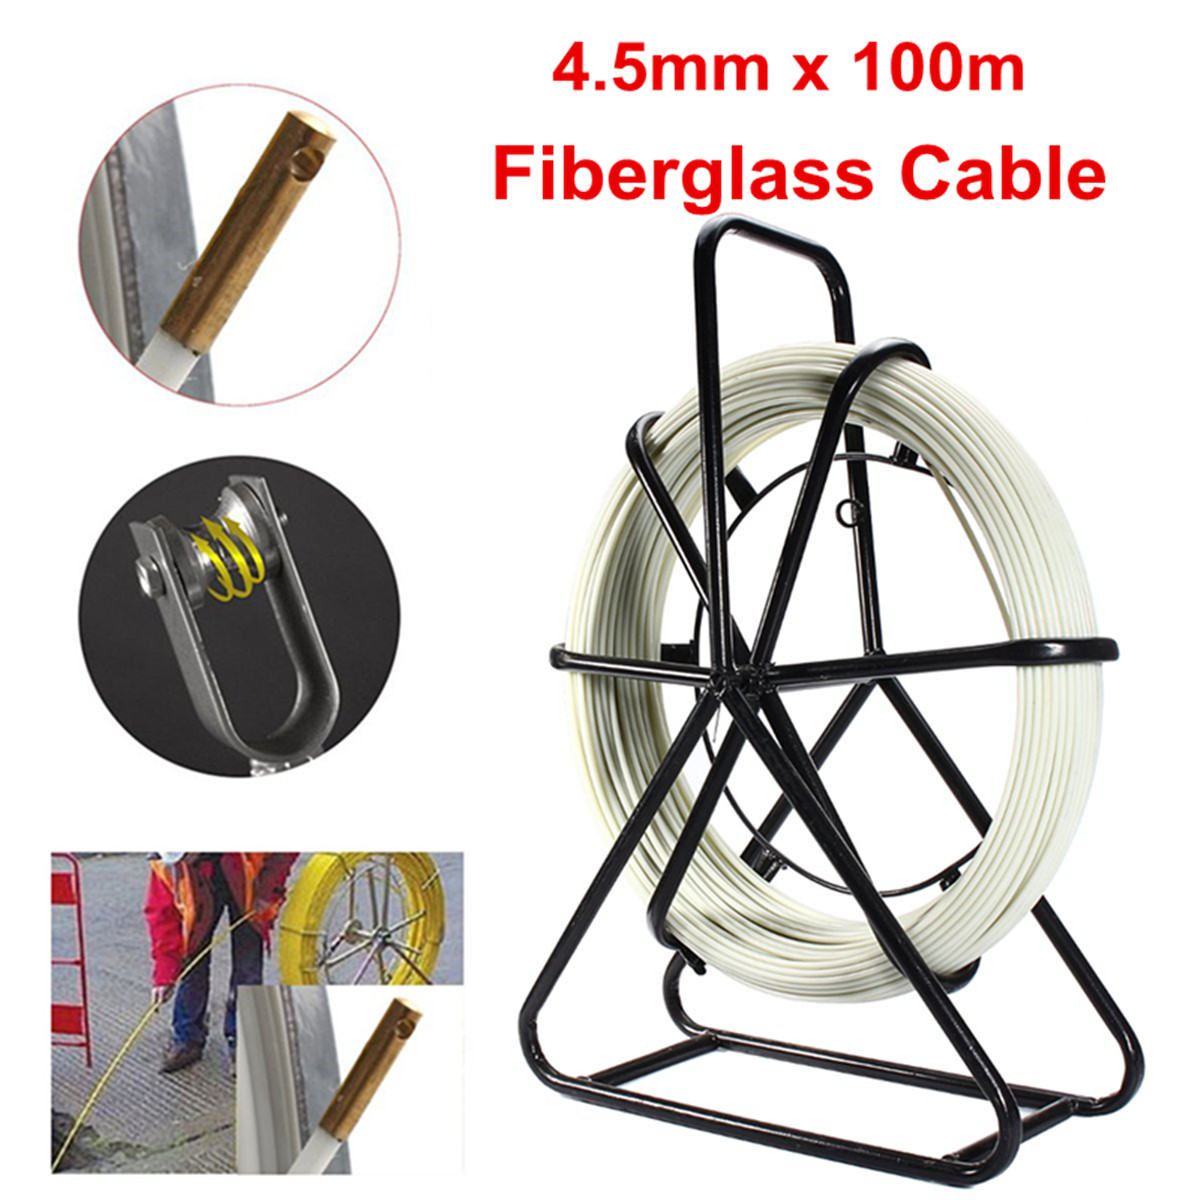 4.5mm 100M Fish Tape Fiberglass Wire Cable Running Rod Duct Rodder Fishtape Fiberglass Cable Puller